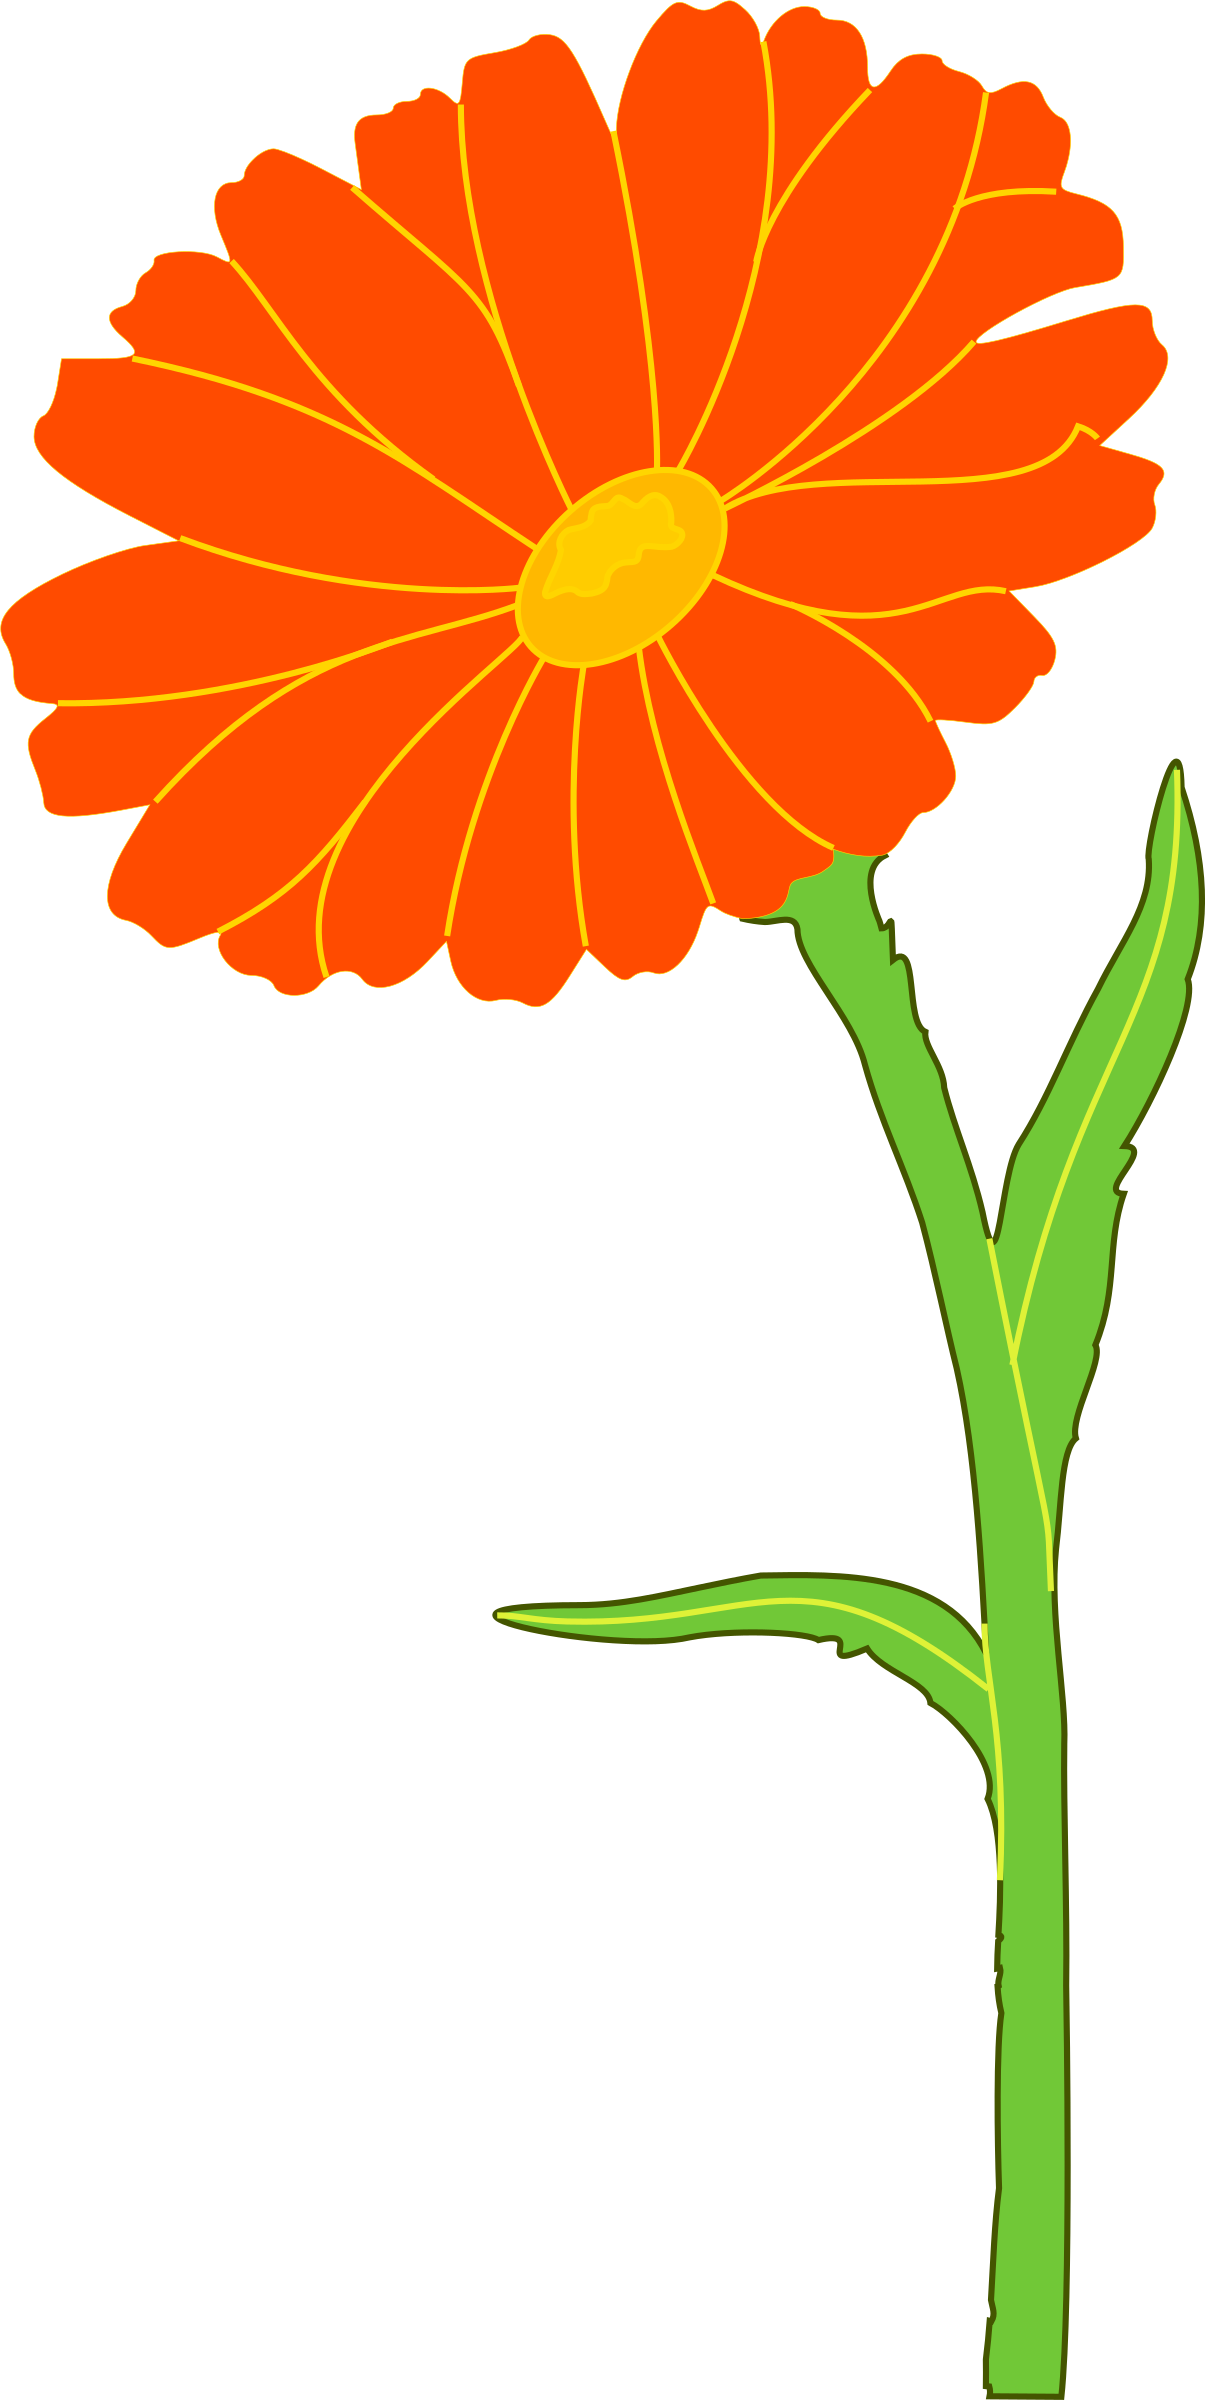 Marigold clipart #4, Download drawings